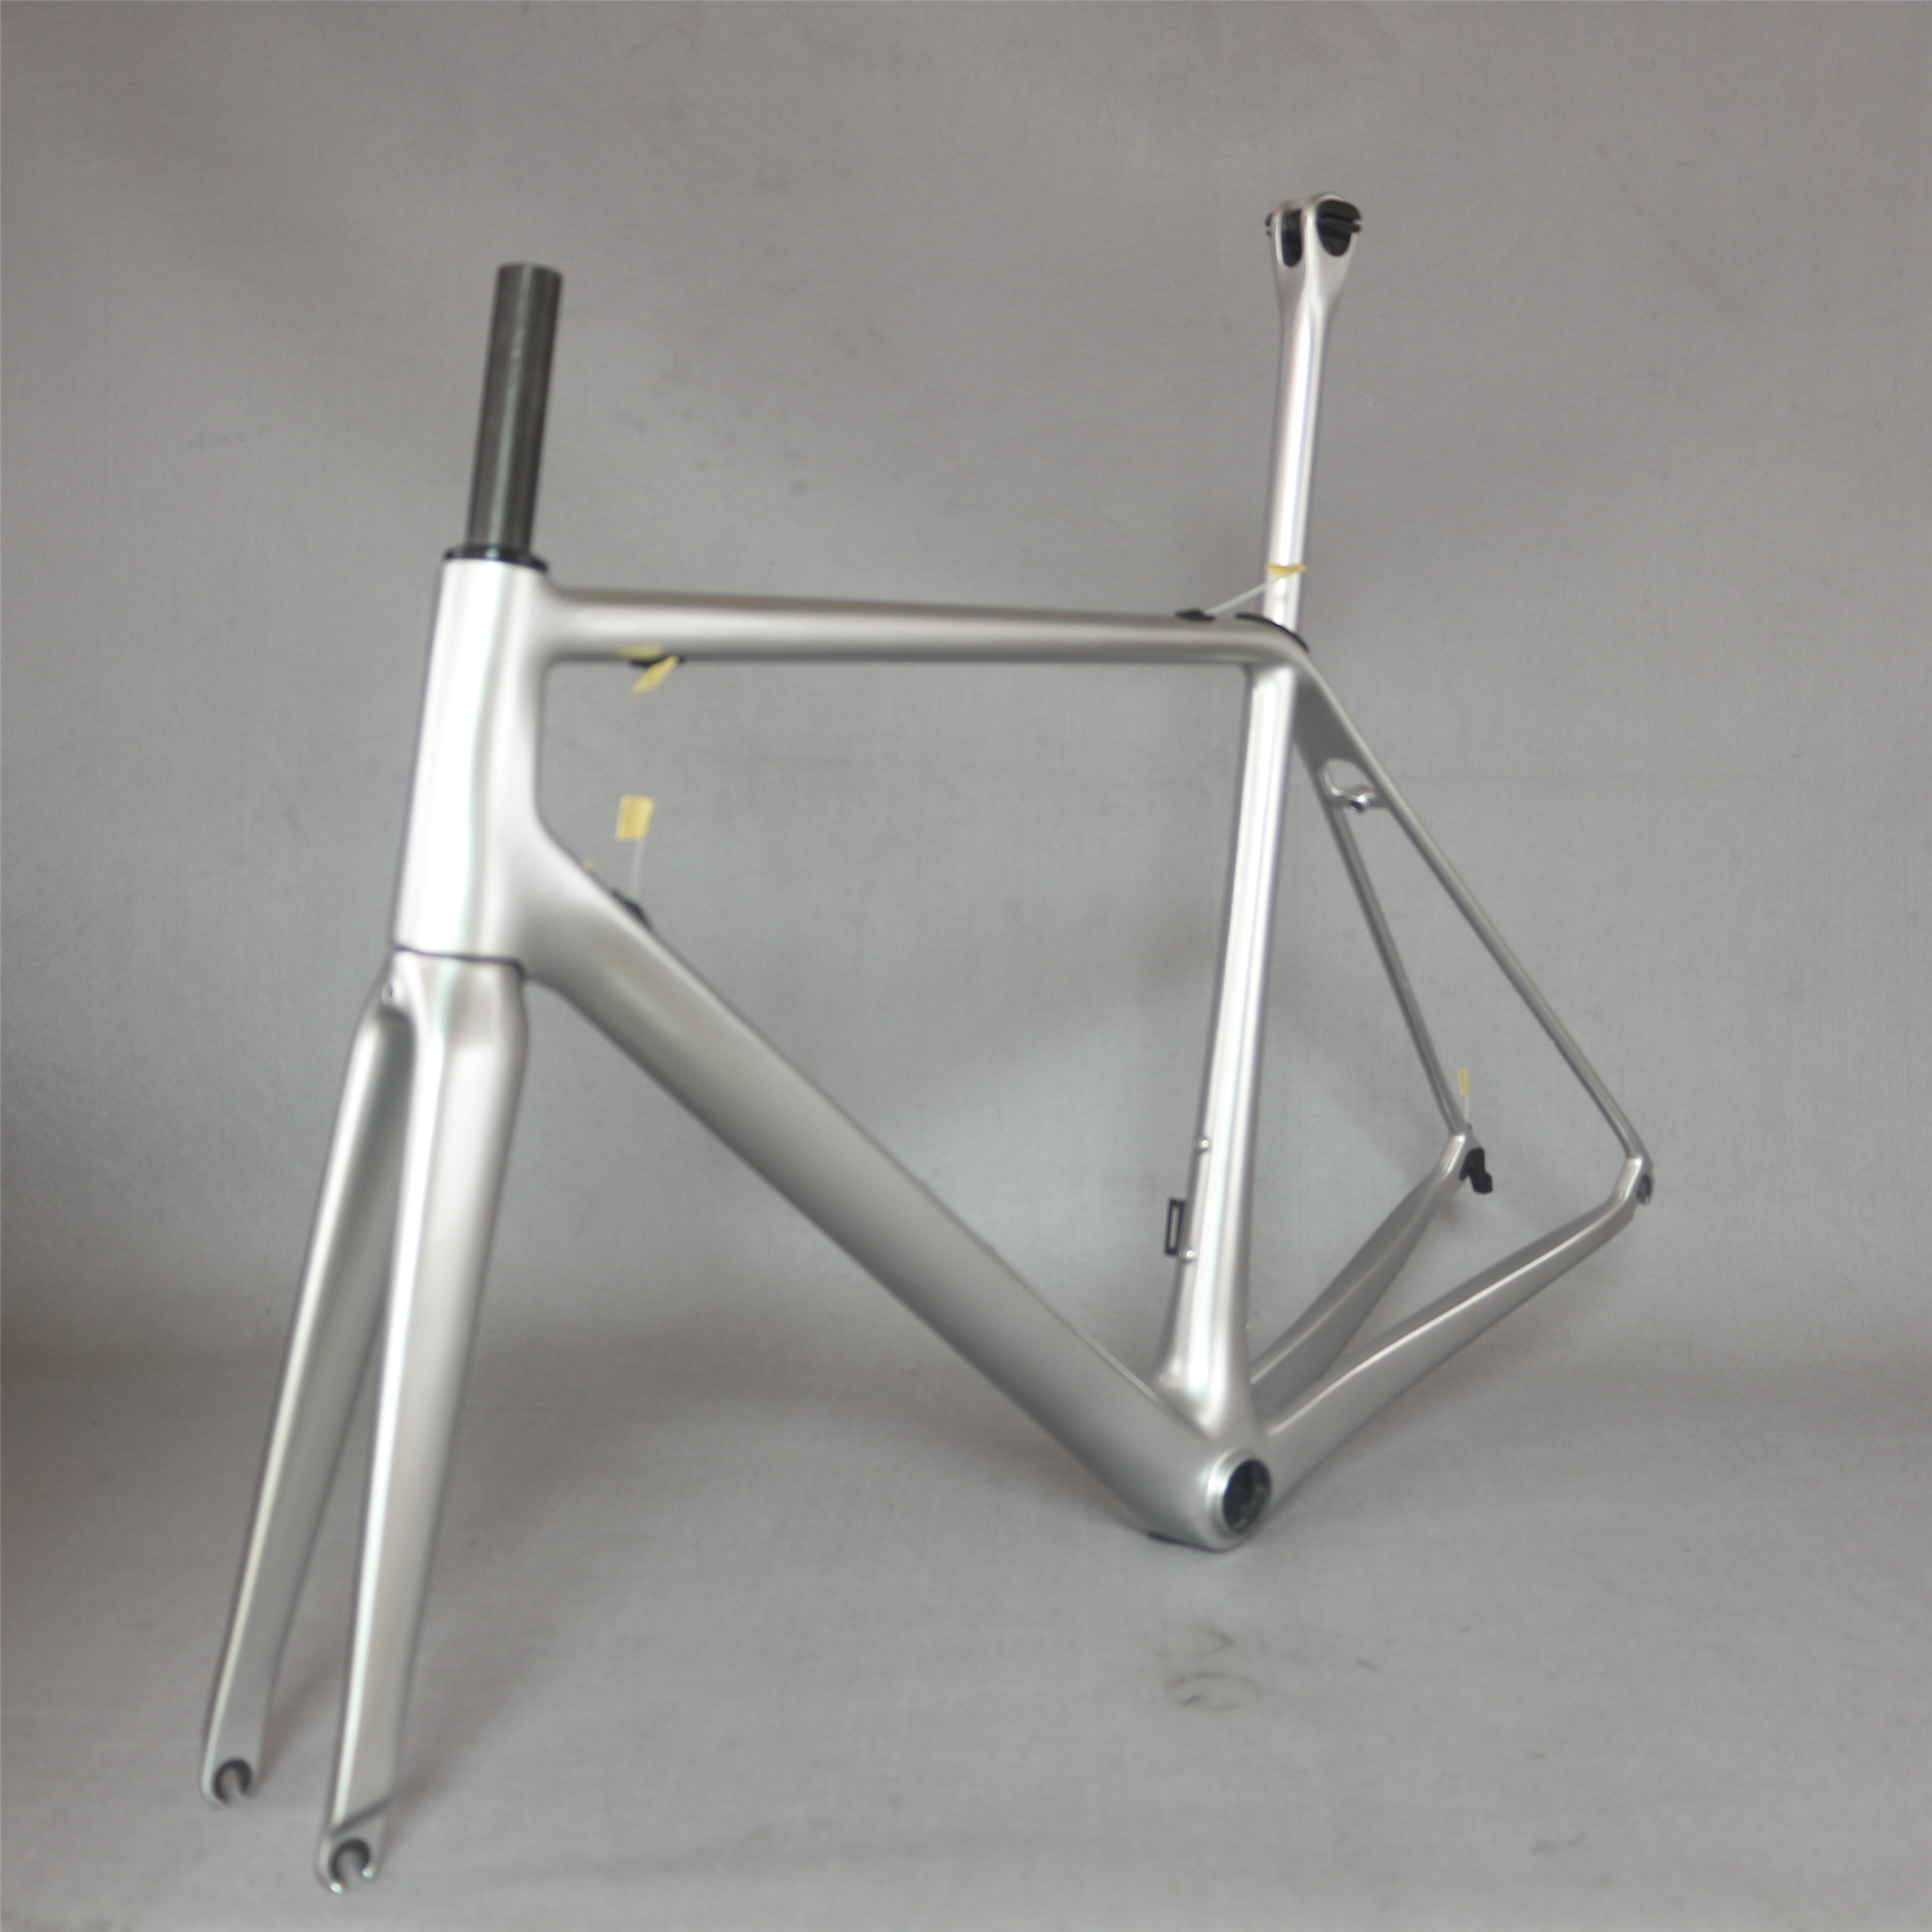 Seraph Custom Silver Plating Paint BB86 Carbon Fiber T800 And T1000 Mixed Carbon Fiber Normal Brake Superlight Road Frame FM609